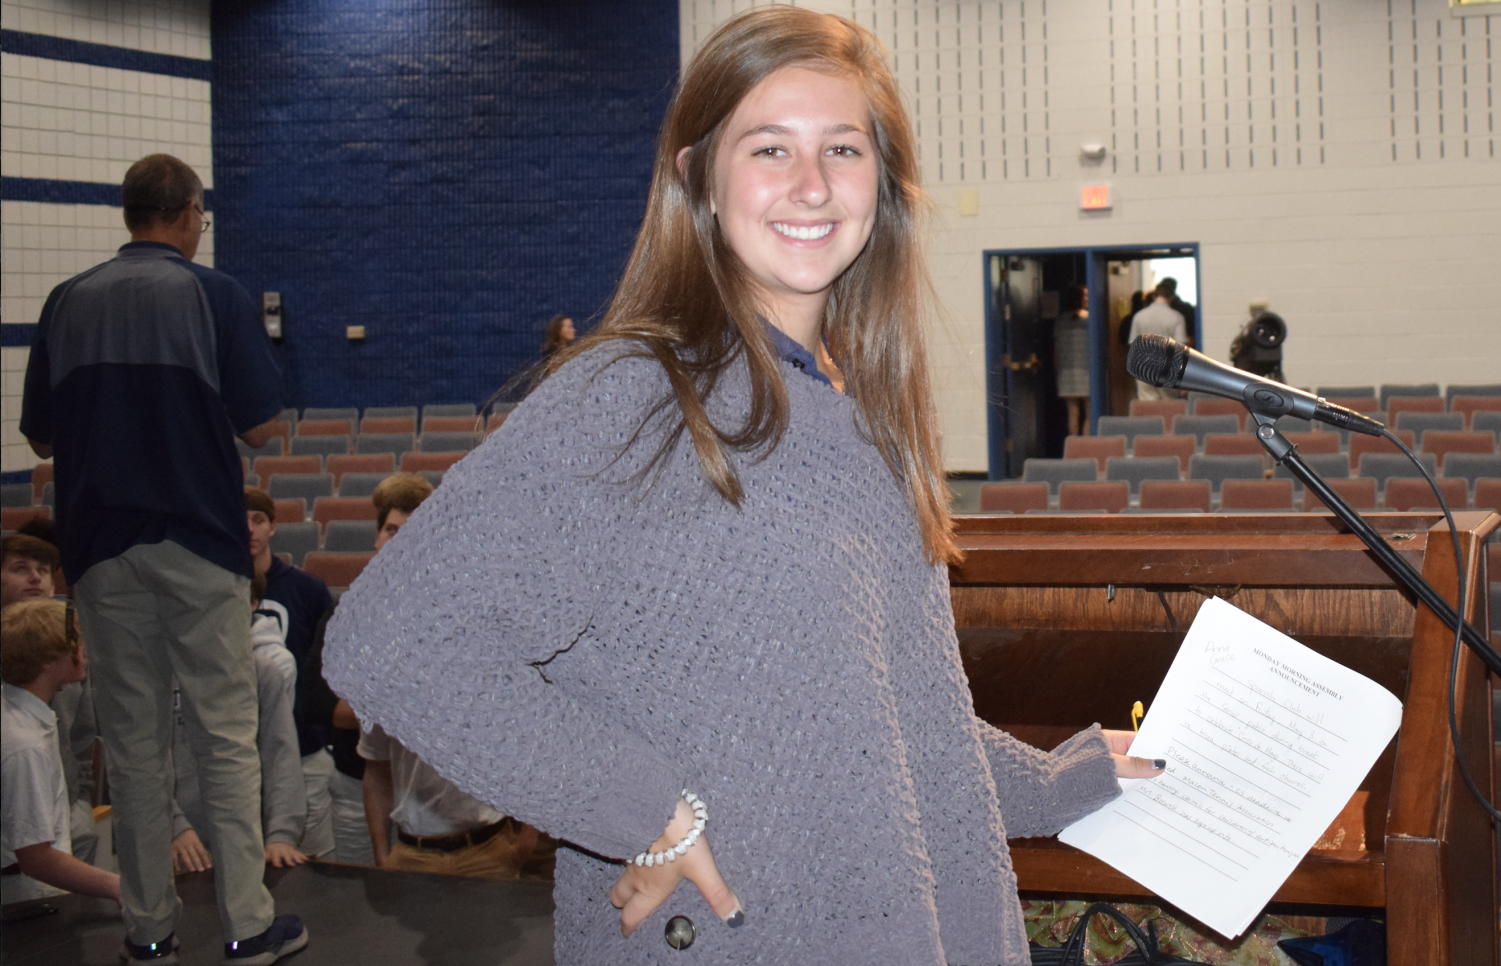 Elizabeth Sellers conducted her first Upper School assembly on Monday